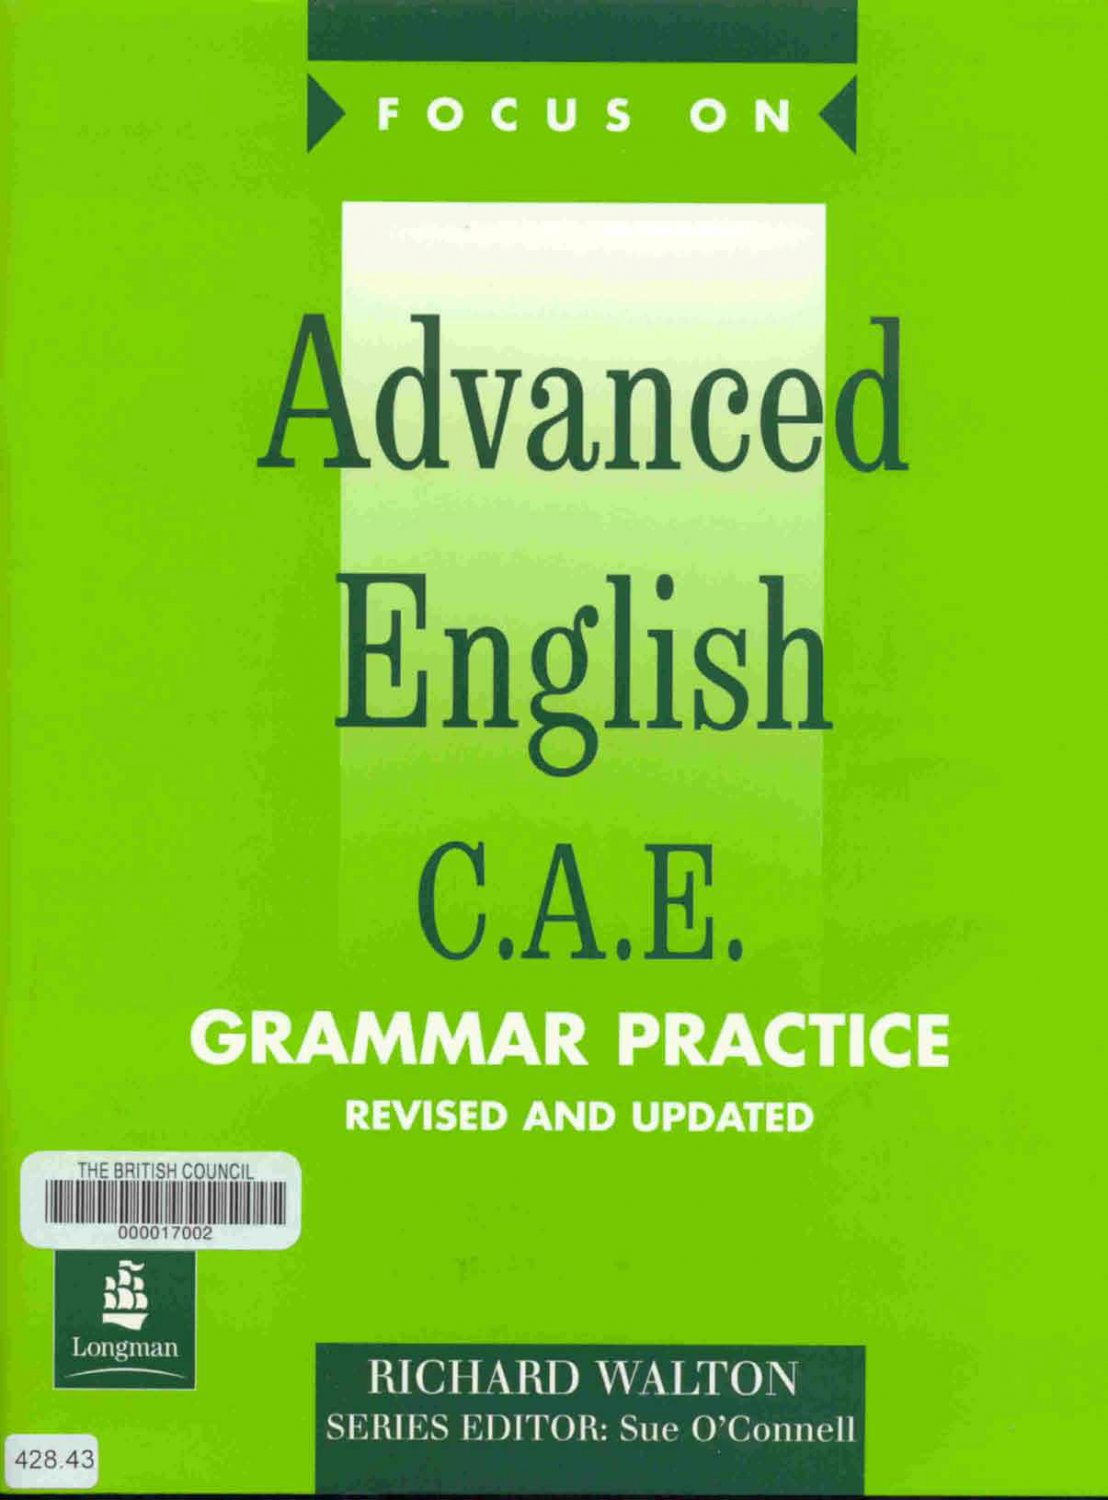 ADVANCE ENGLISH GRAMMAR PRACTICE